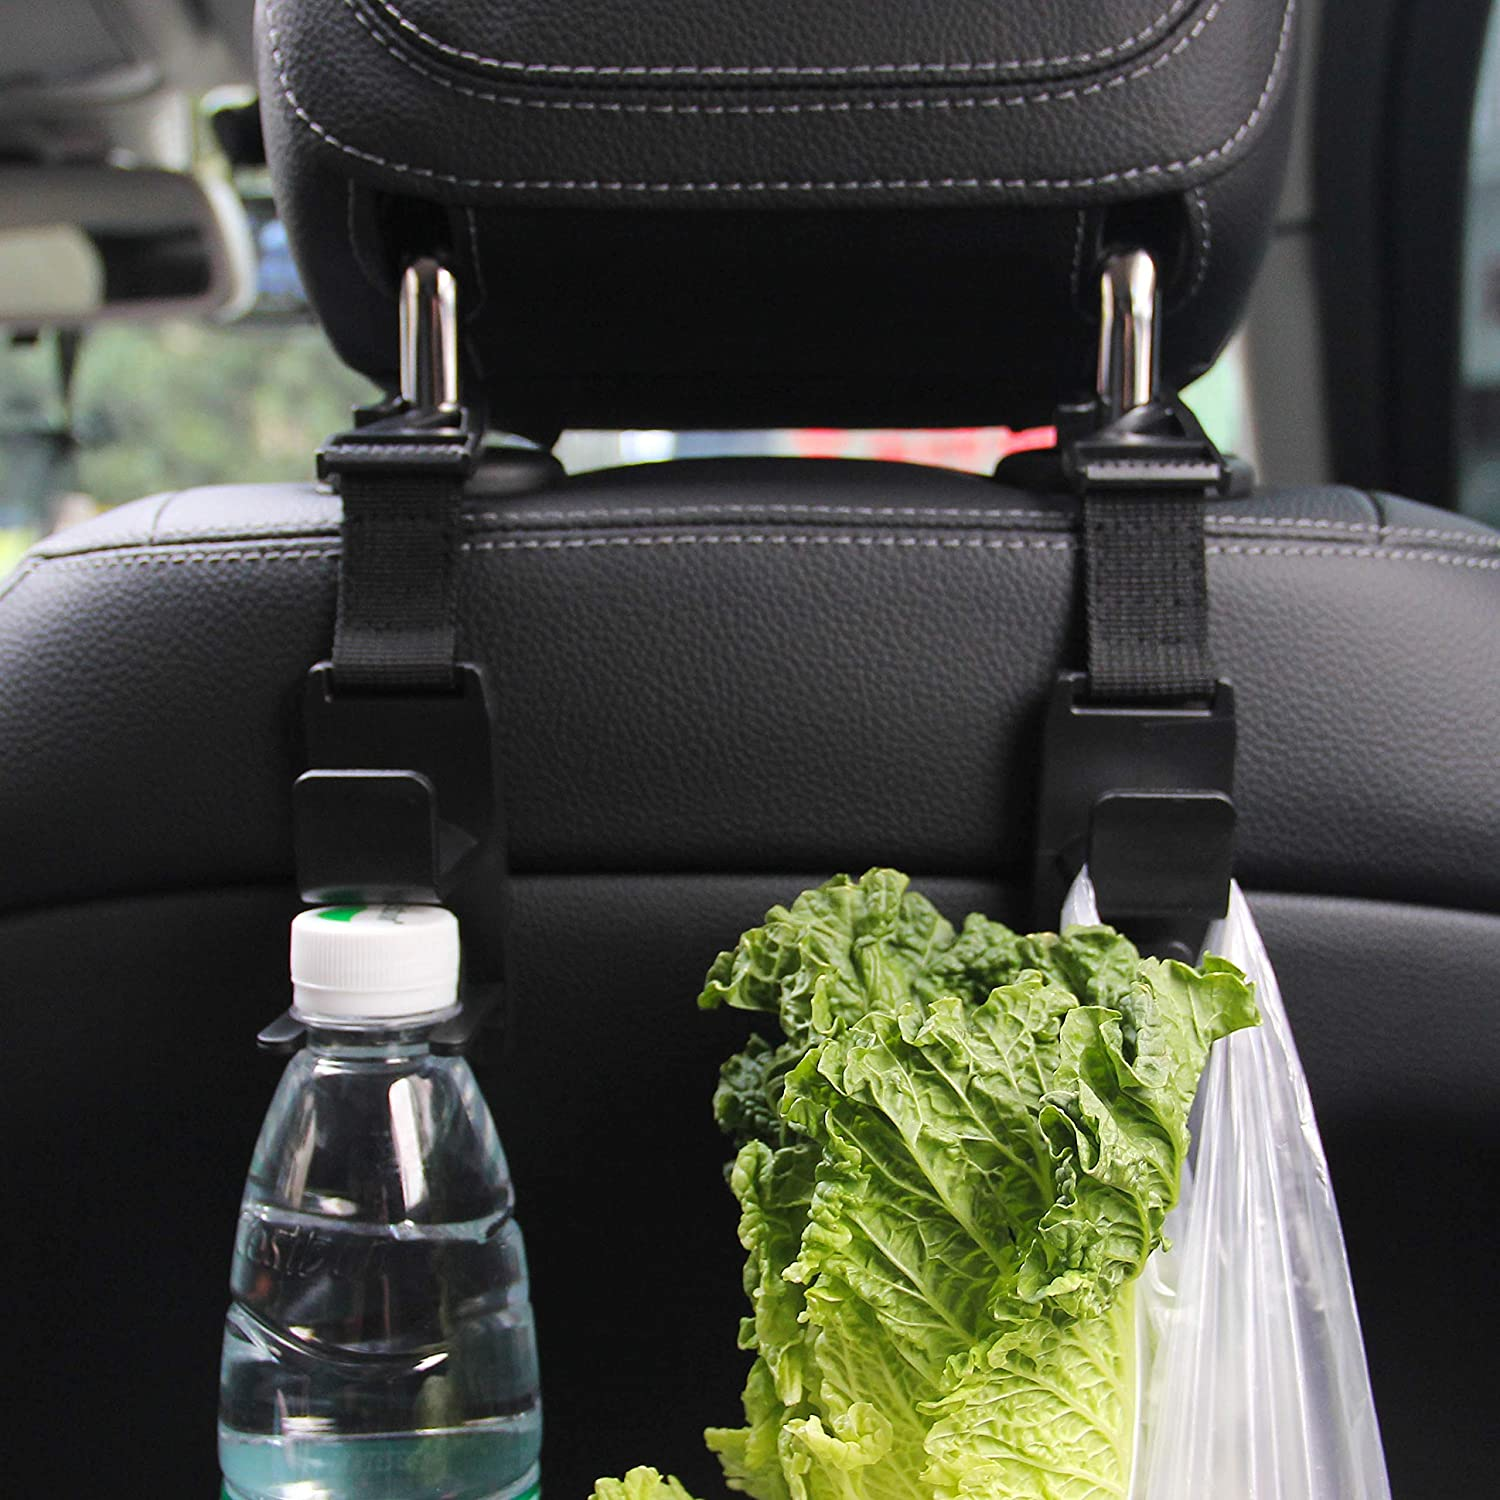 Universal Multifunctional Car Vehicle Back Seat Headrest Mobile Phone Holder Hanger Holder Hook for Bag Purse Cloth Grocery Black Set of 2